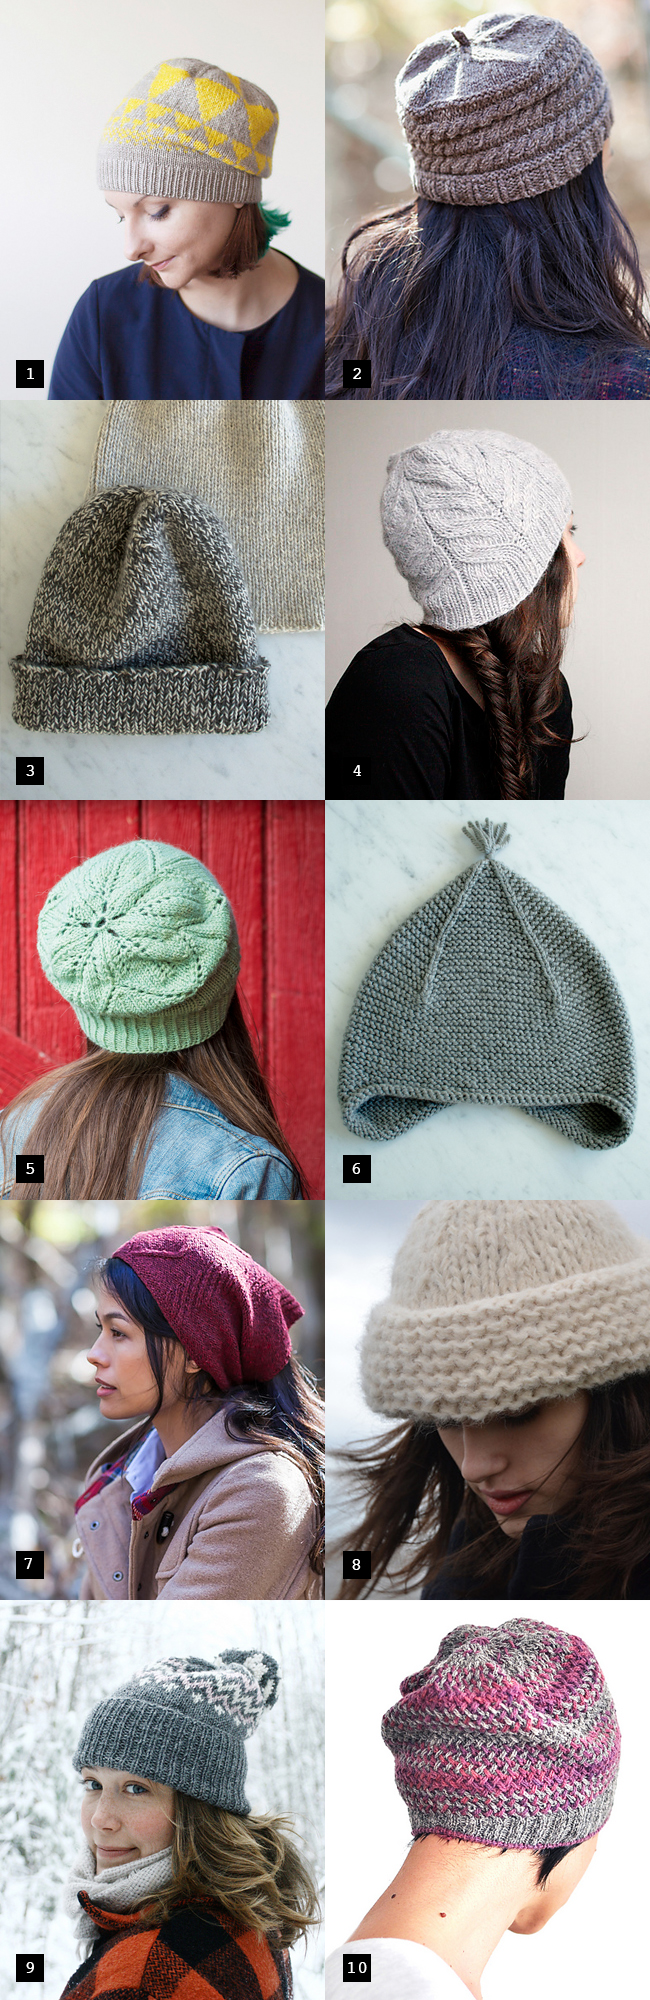 Best new hat patterns